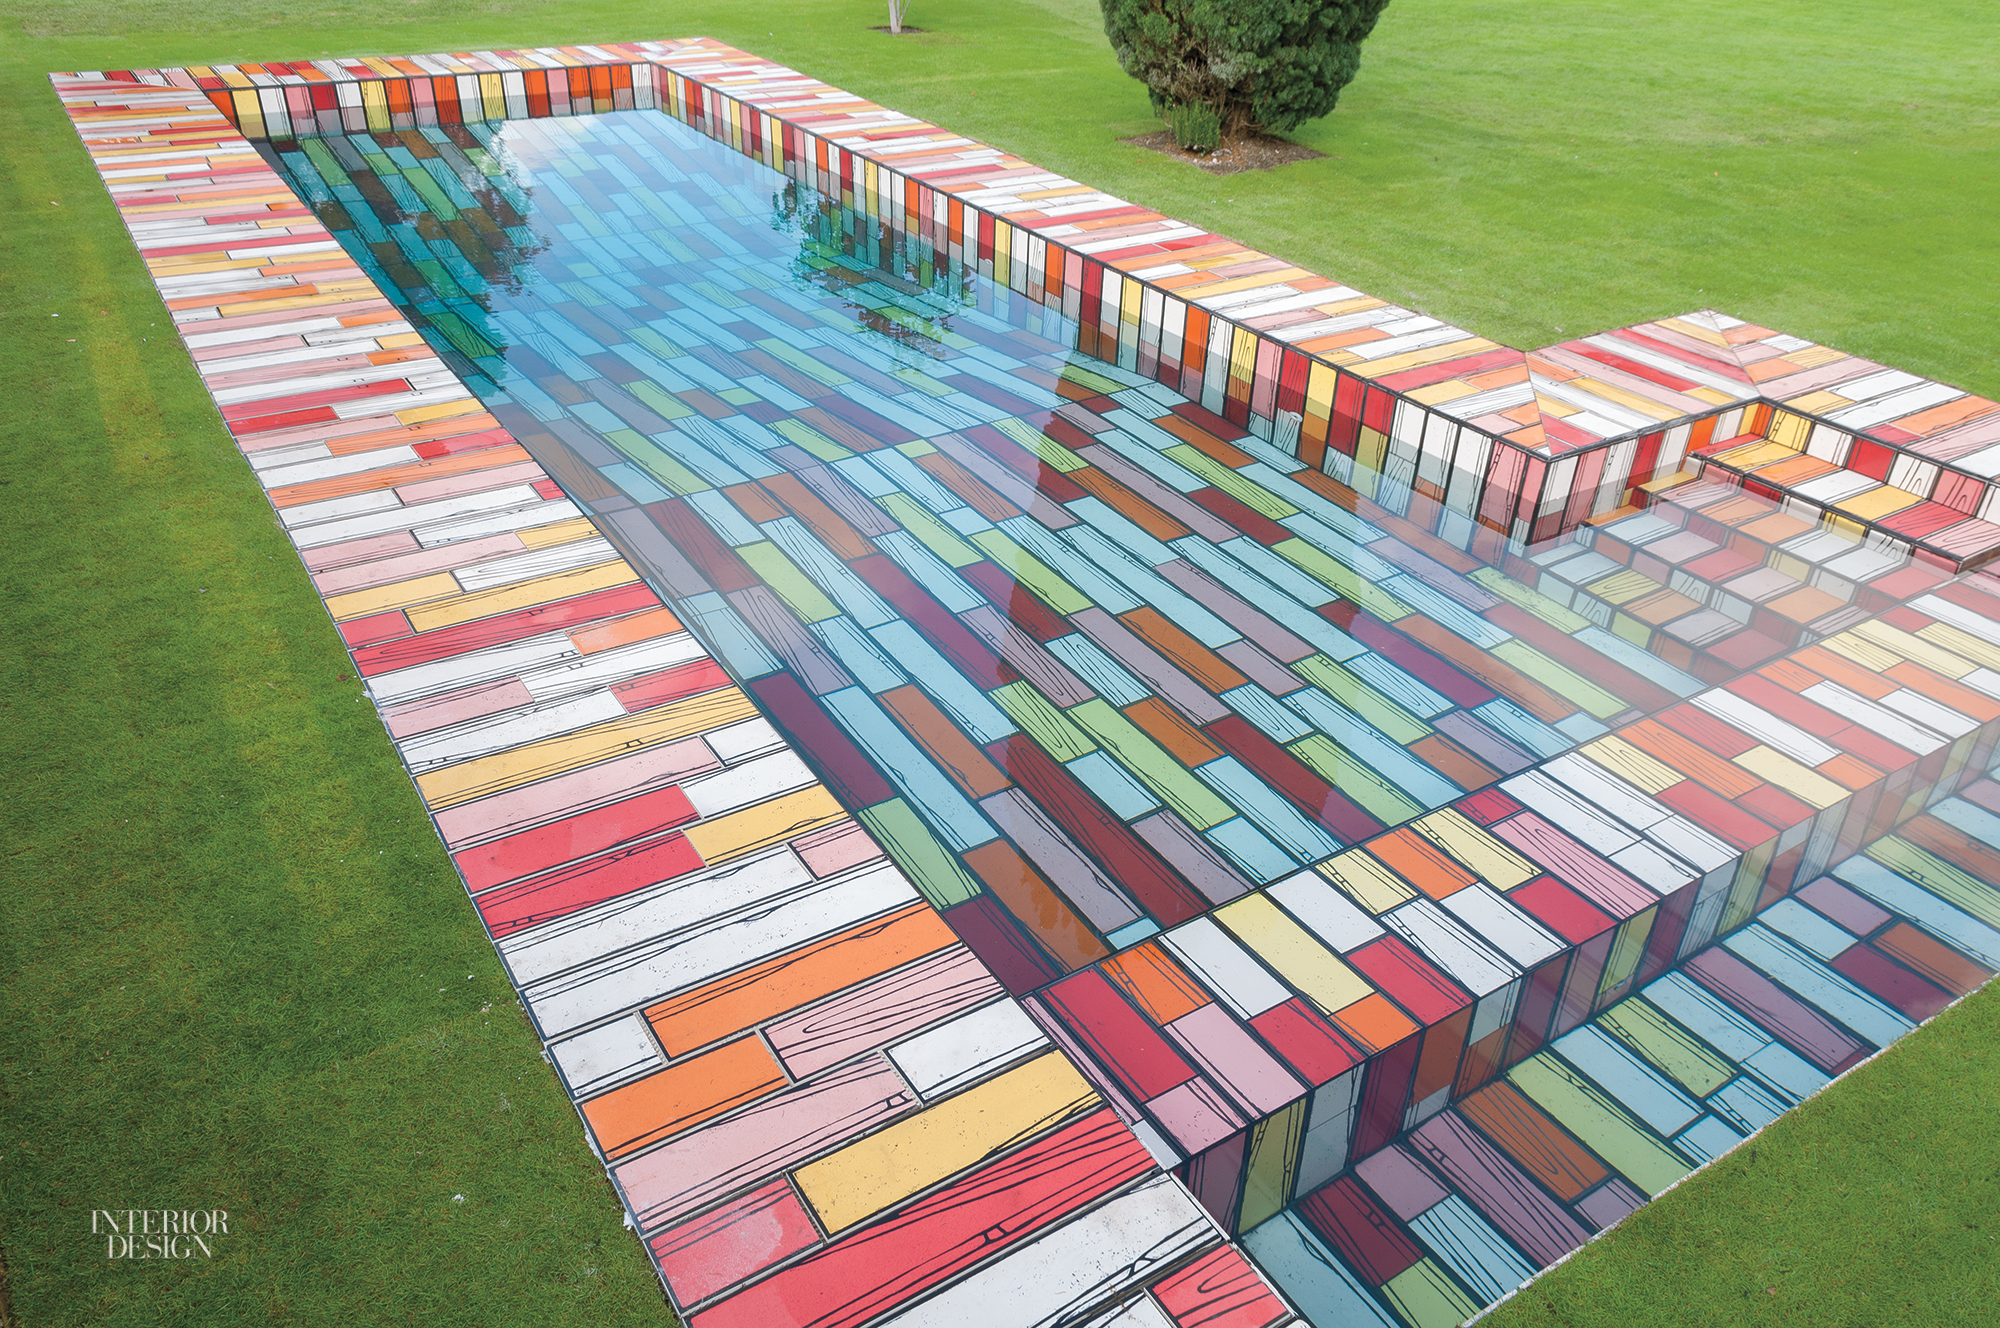 Artist richard woods covers a 60 foot swimming pool with Richard woods designs